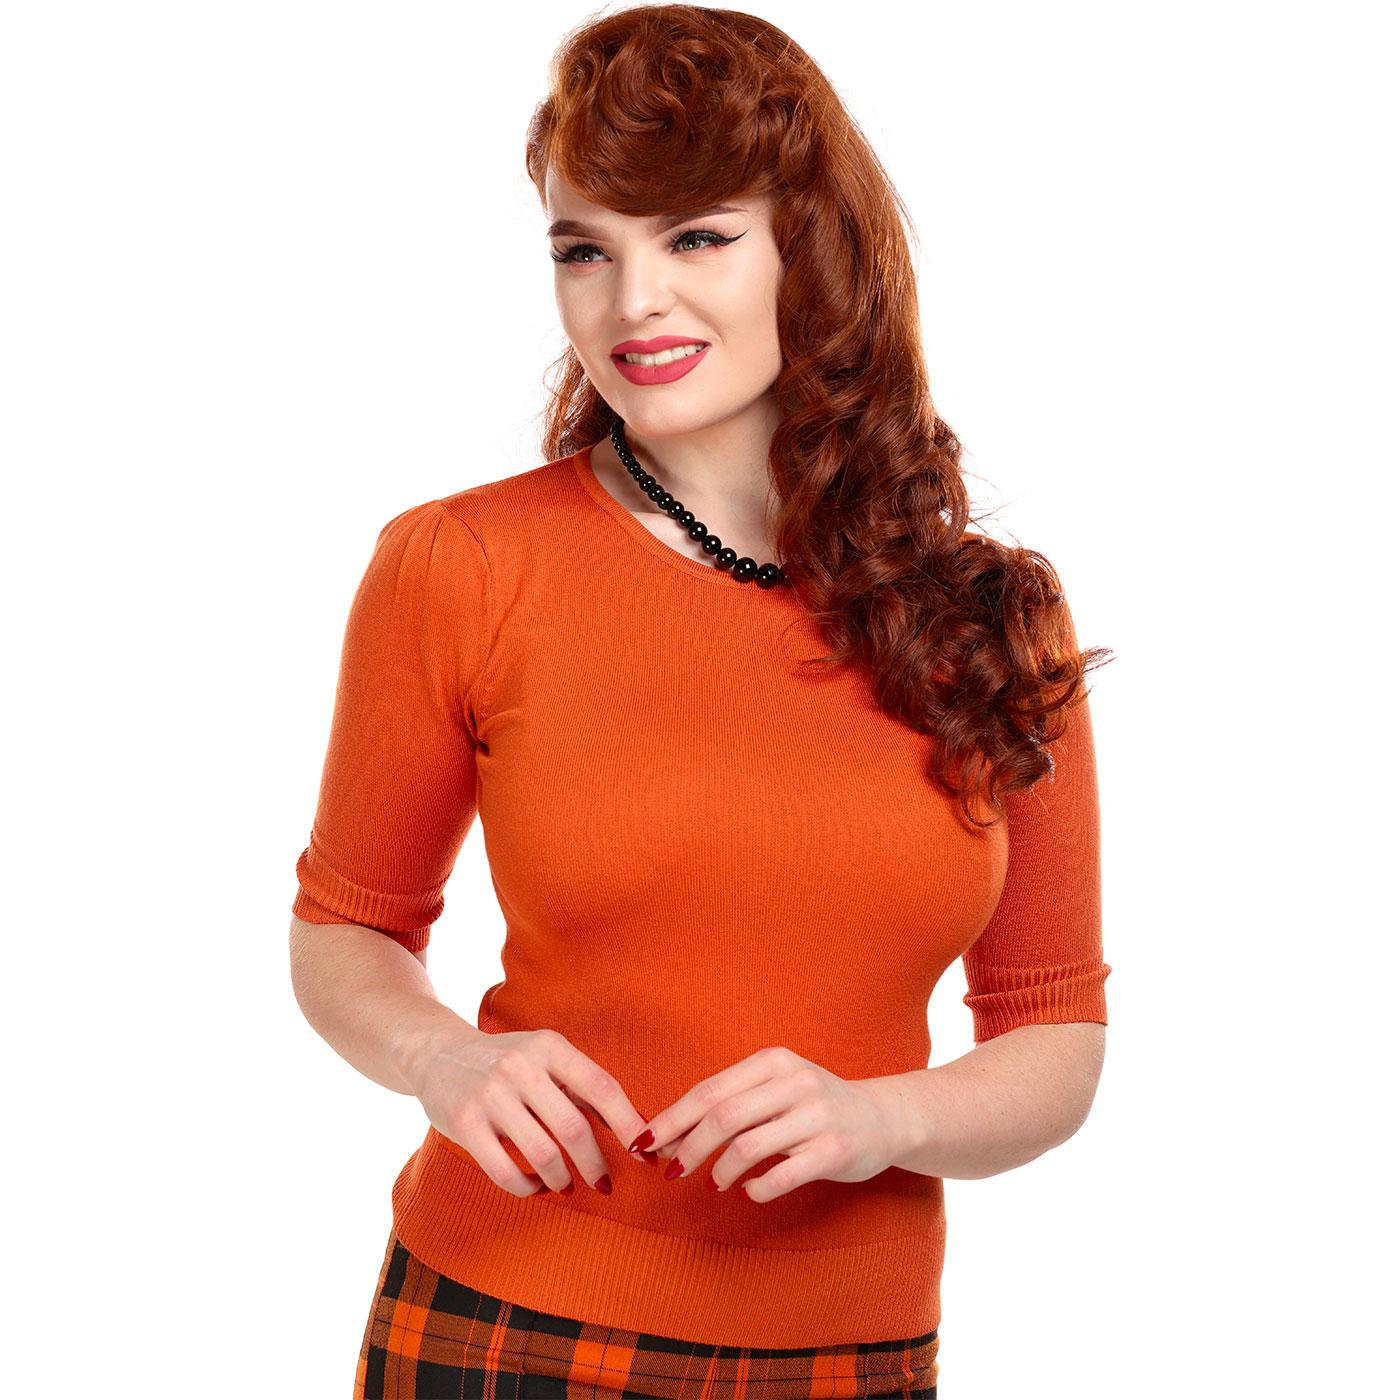 Chrissie COLLECTIF Vintage Plain Knitted Top O